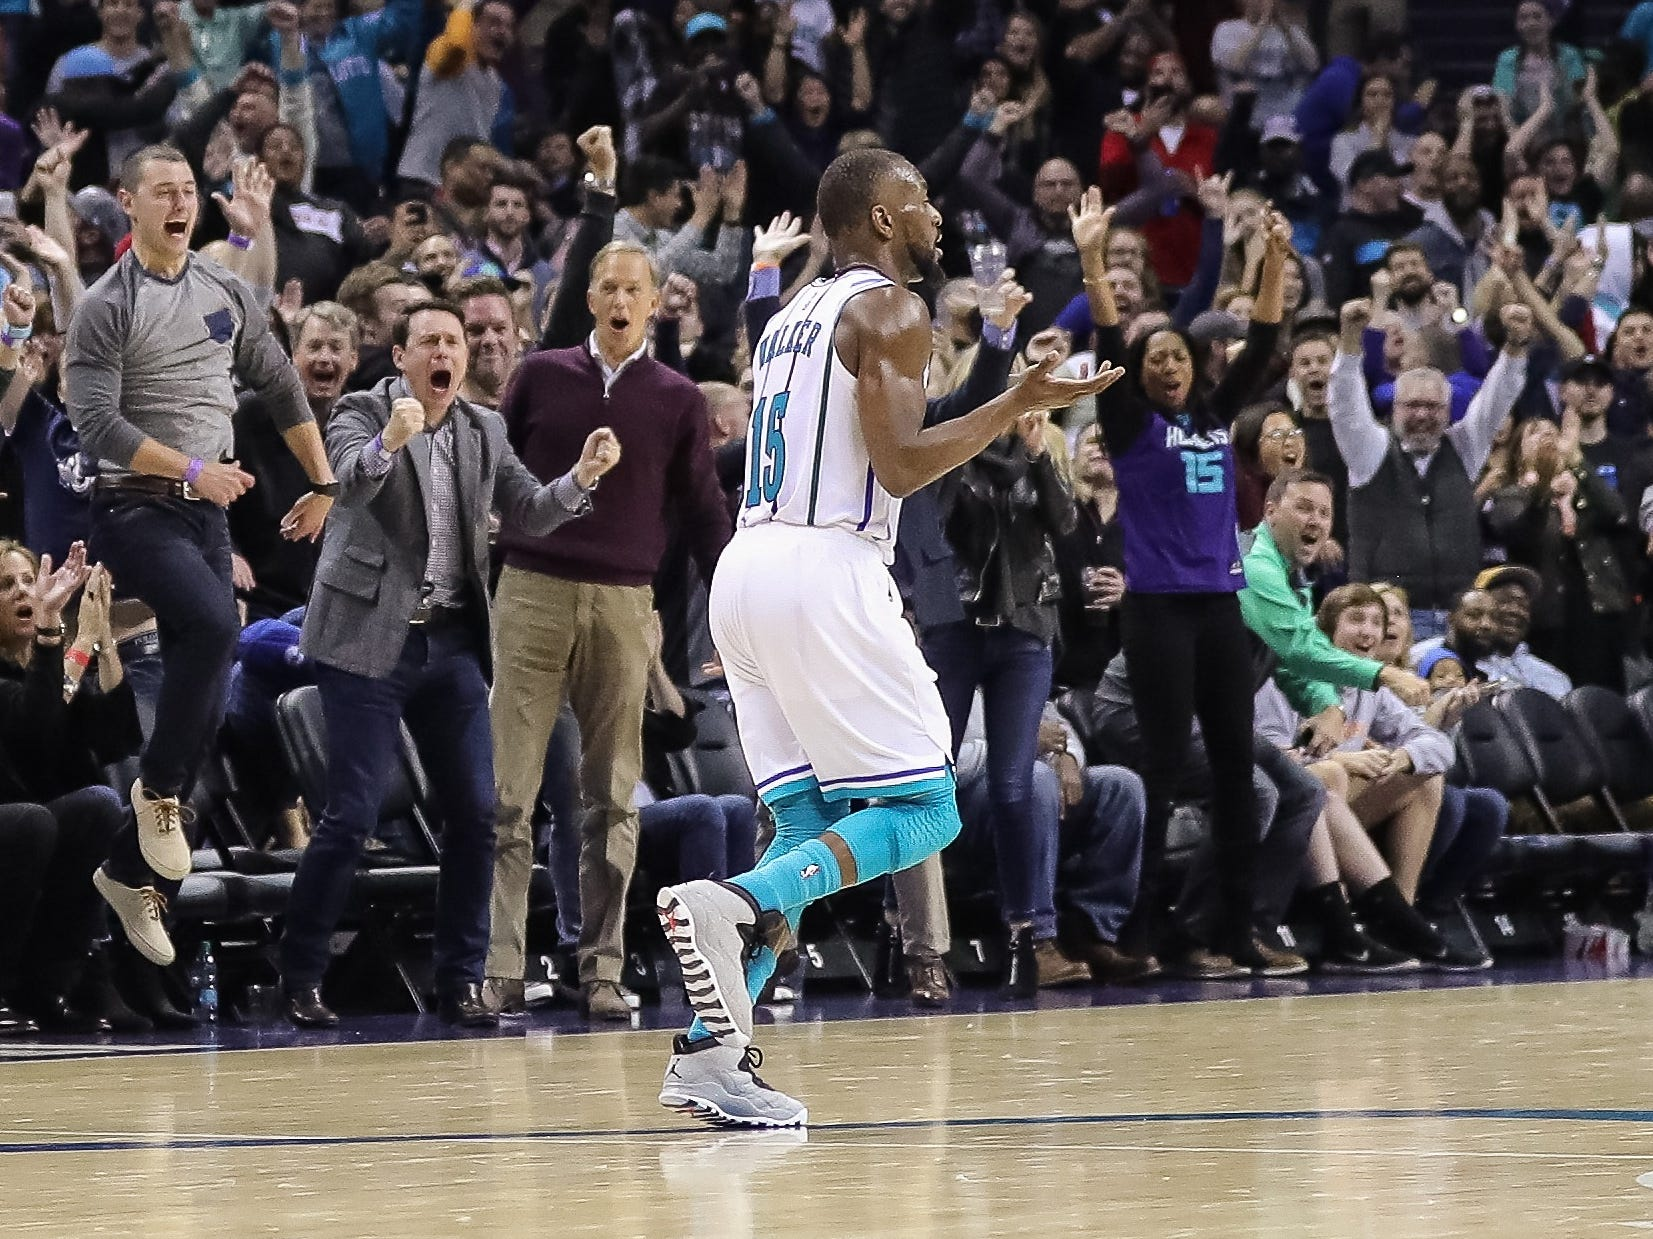 Nov. 17: Hornets guard Kemba Walker celebrates a big bucket late in the second half against the 76ers in Charlotte. Walker poured in a franchise-record 60 points on the night.